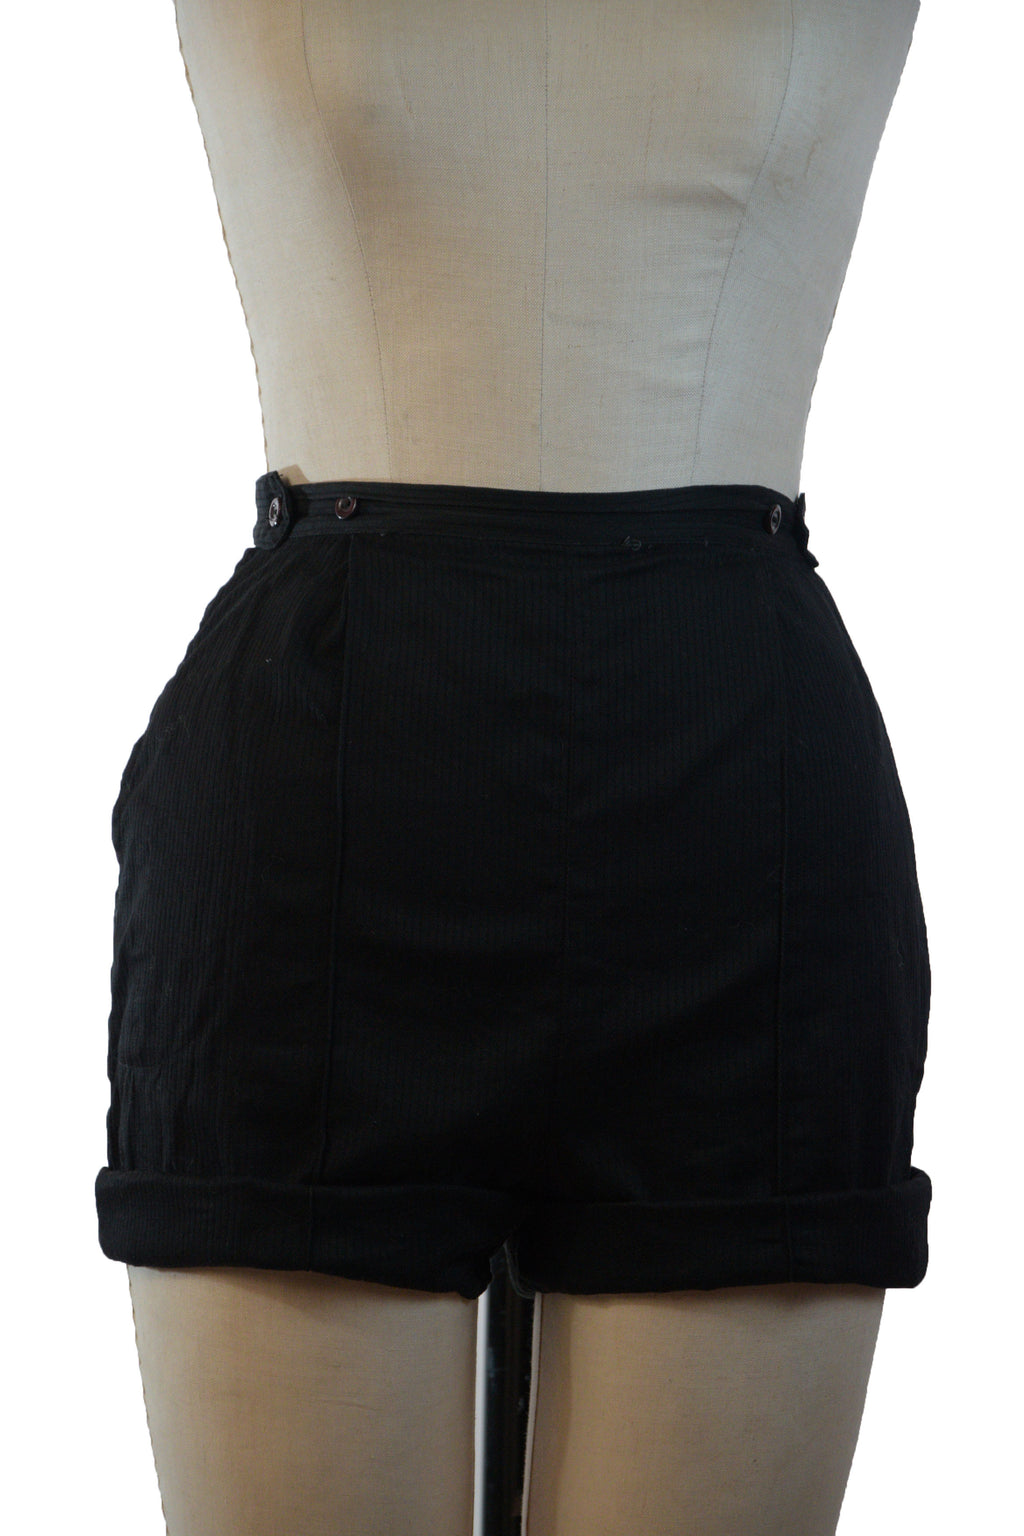 Ideal 1950s Black Ribbed Cotton Shorts with Adjustable Button Waist.